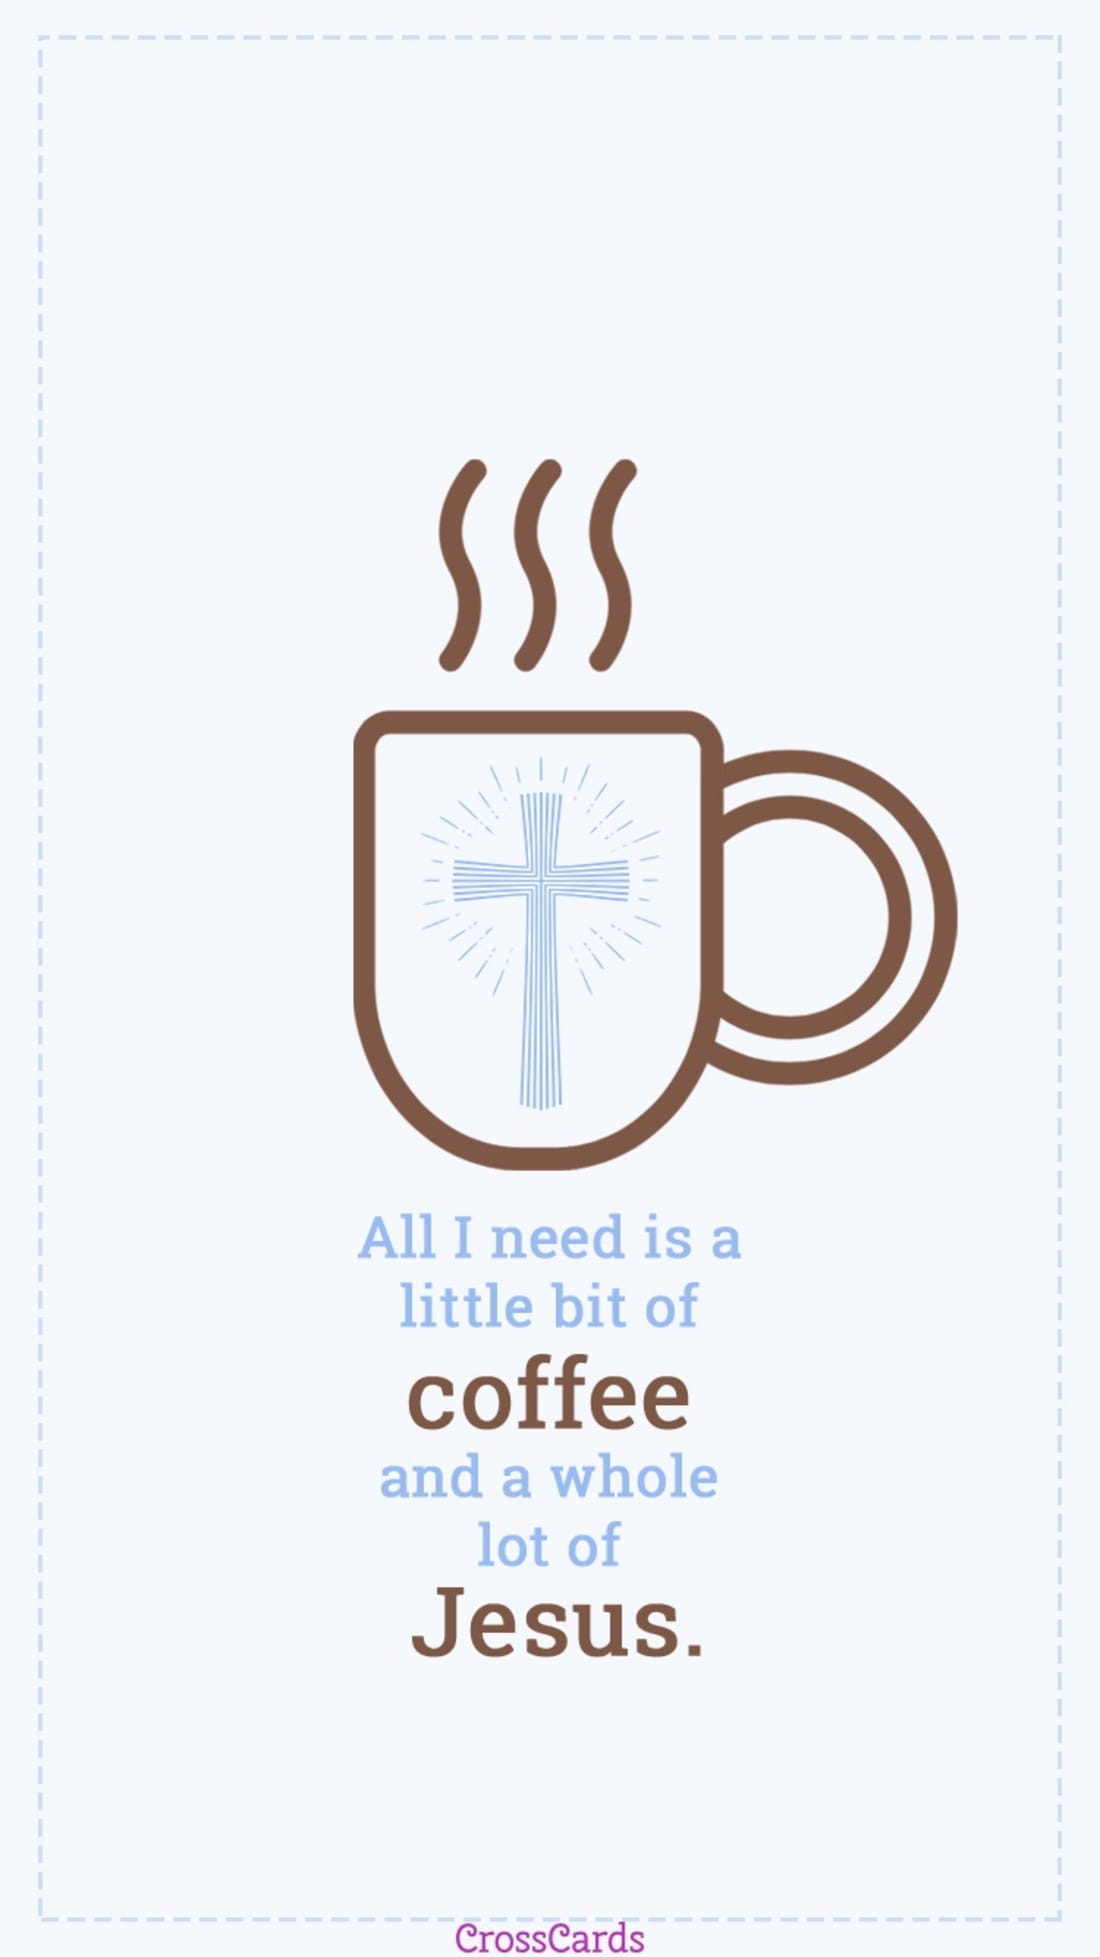 Coffee and Jesus mobile phone wallpaper